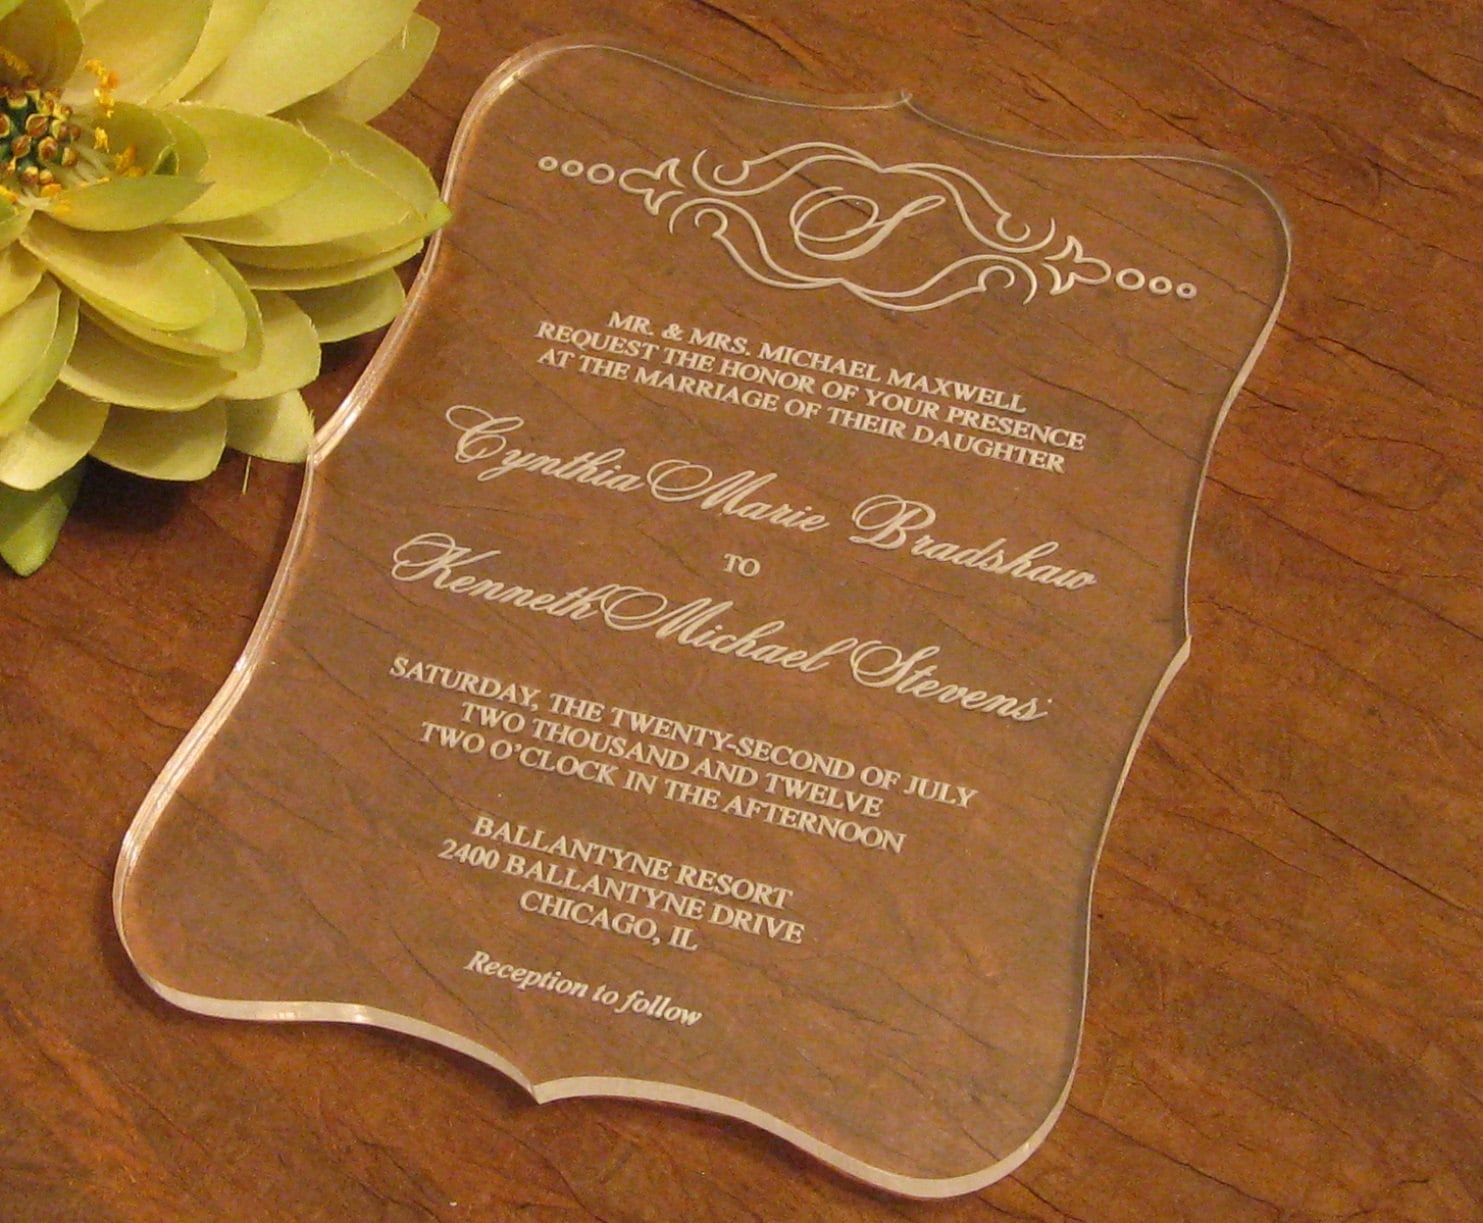 What would you bees think about an acrylic invitation